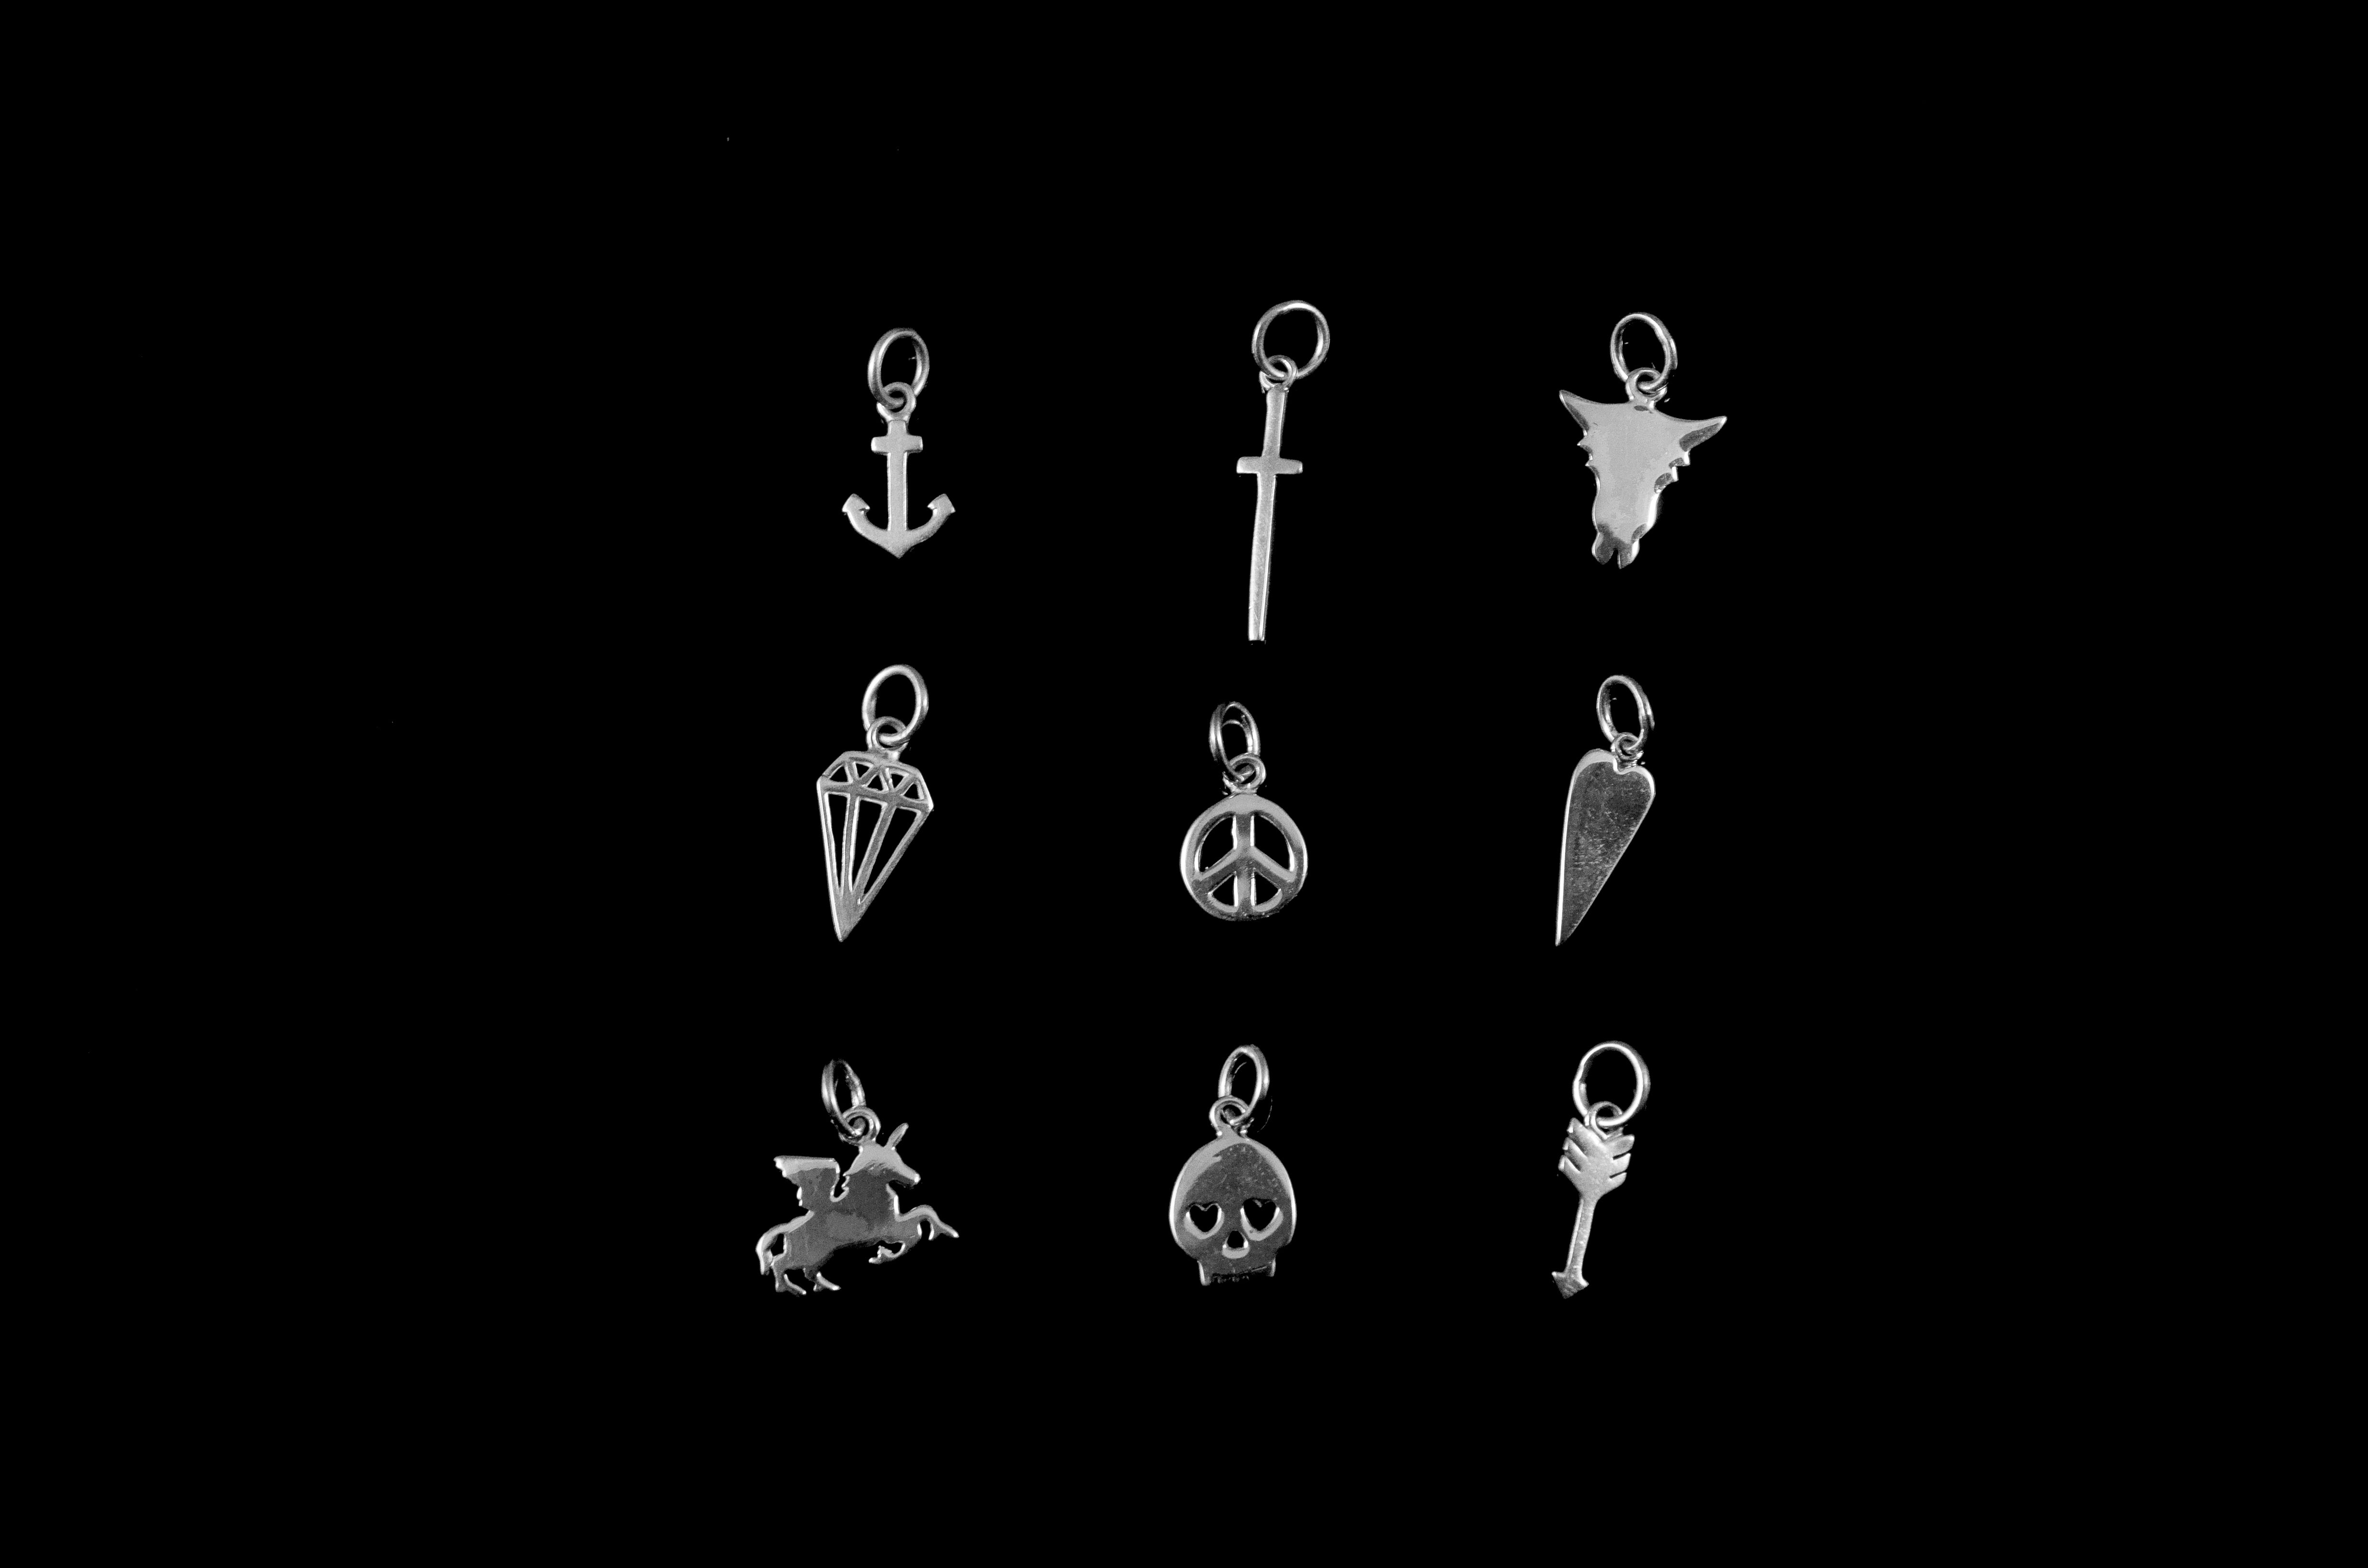 Mini symbolic charms